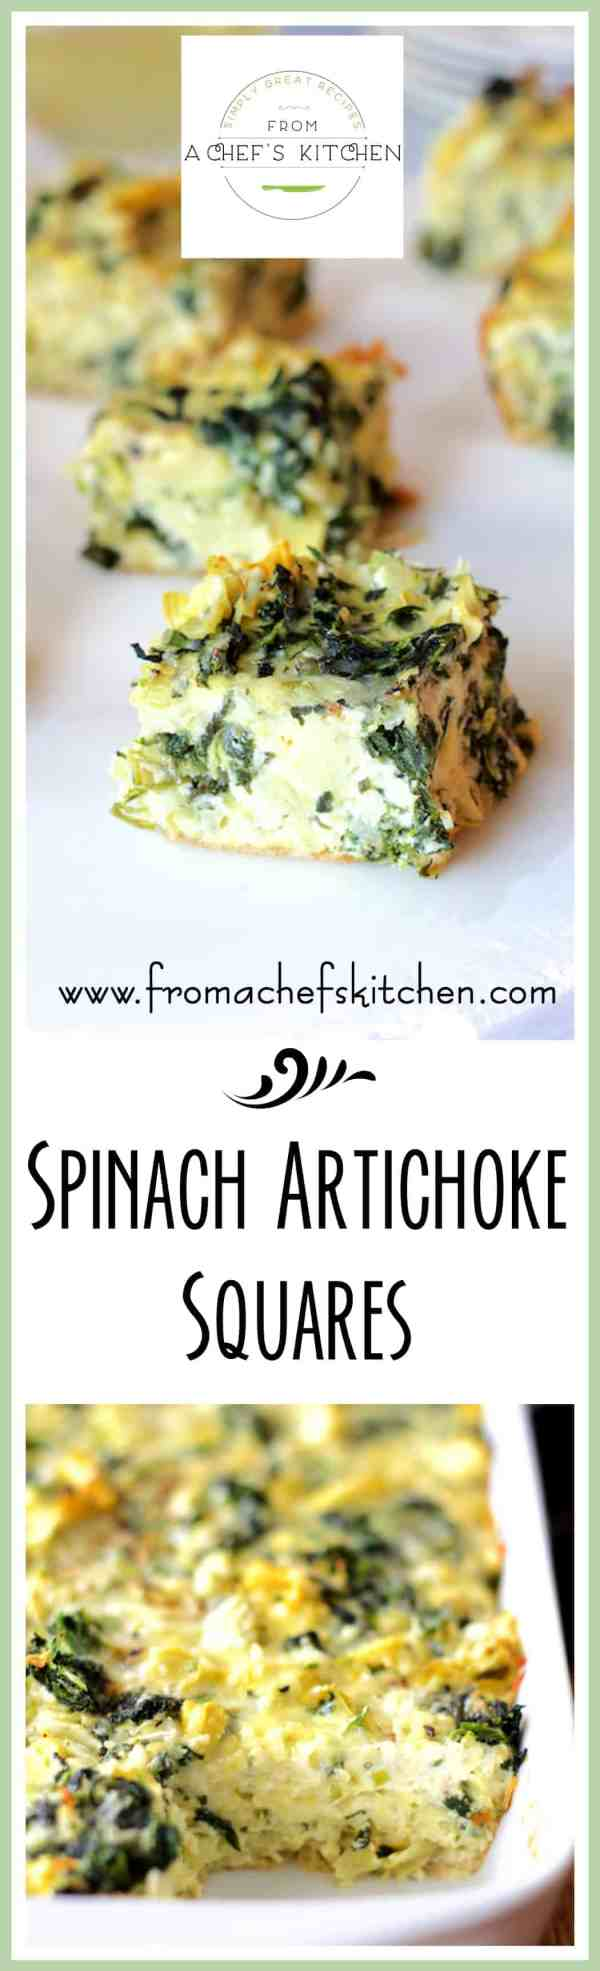 Spinach Artichoke Squares are an elegant, low-carb spin on spinach artichoke dip!